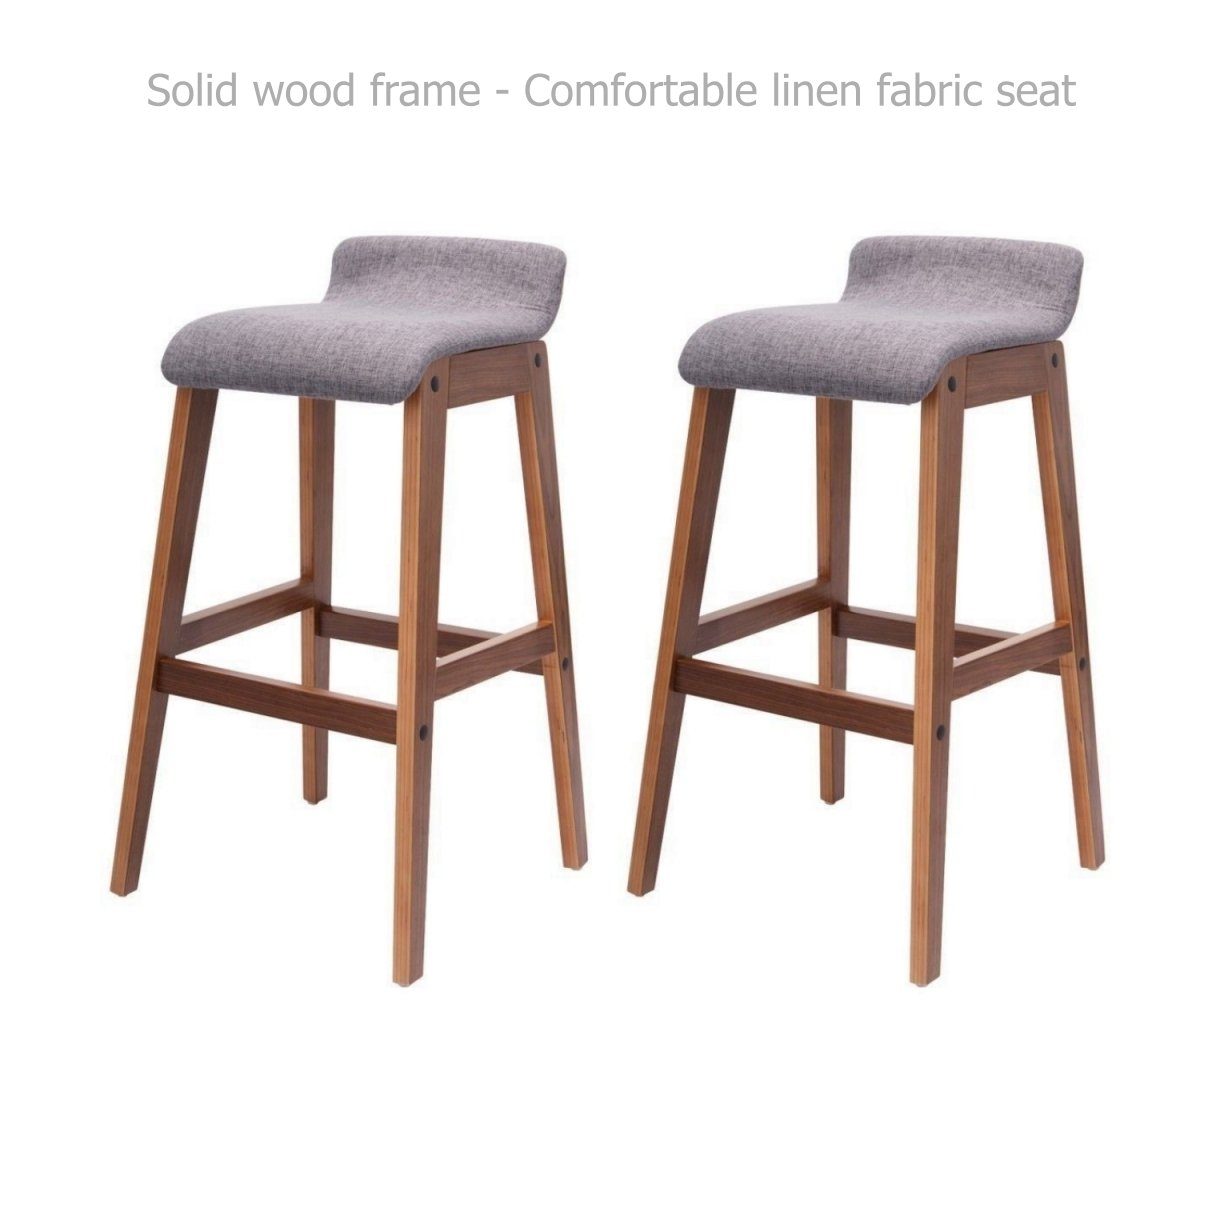 Modern Classic Bentwood Bar Stools Solid Wood Frame Unique Linen Fabrics Seat Counter Height Pub Kitchen Dining Chair - Set of 2 Grey #1528